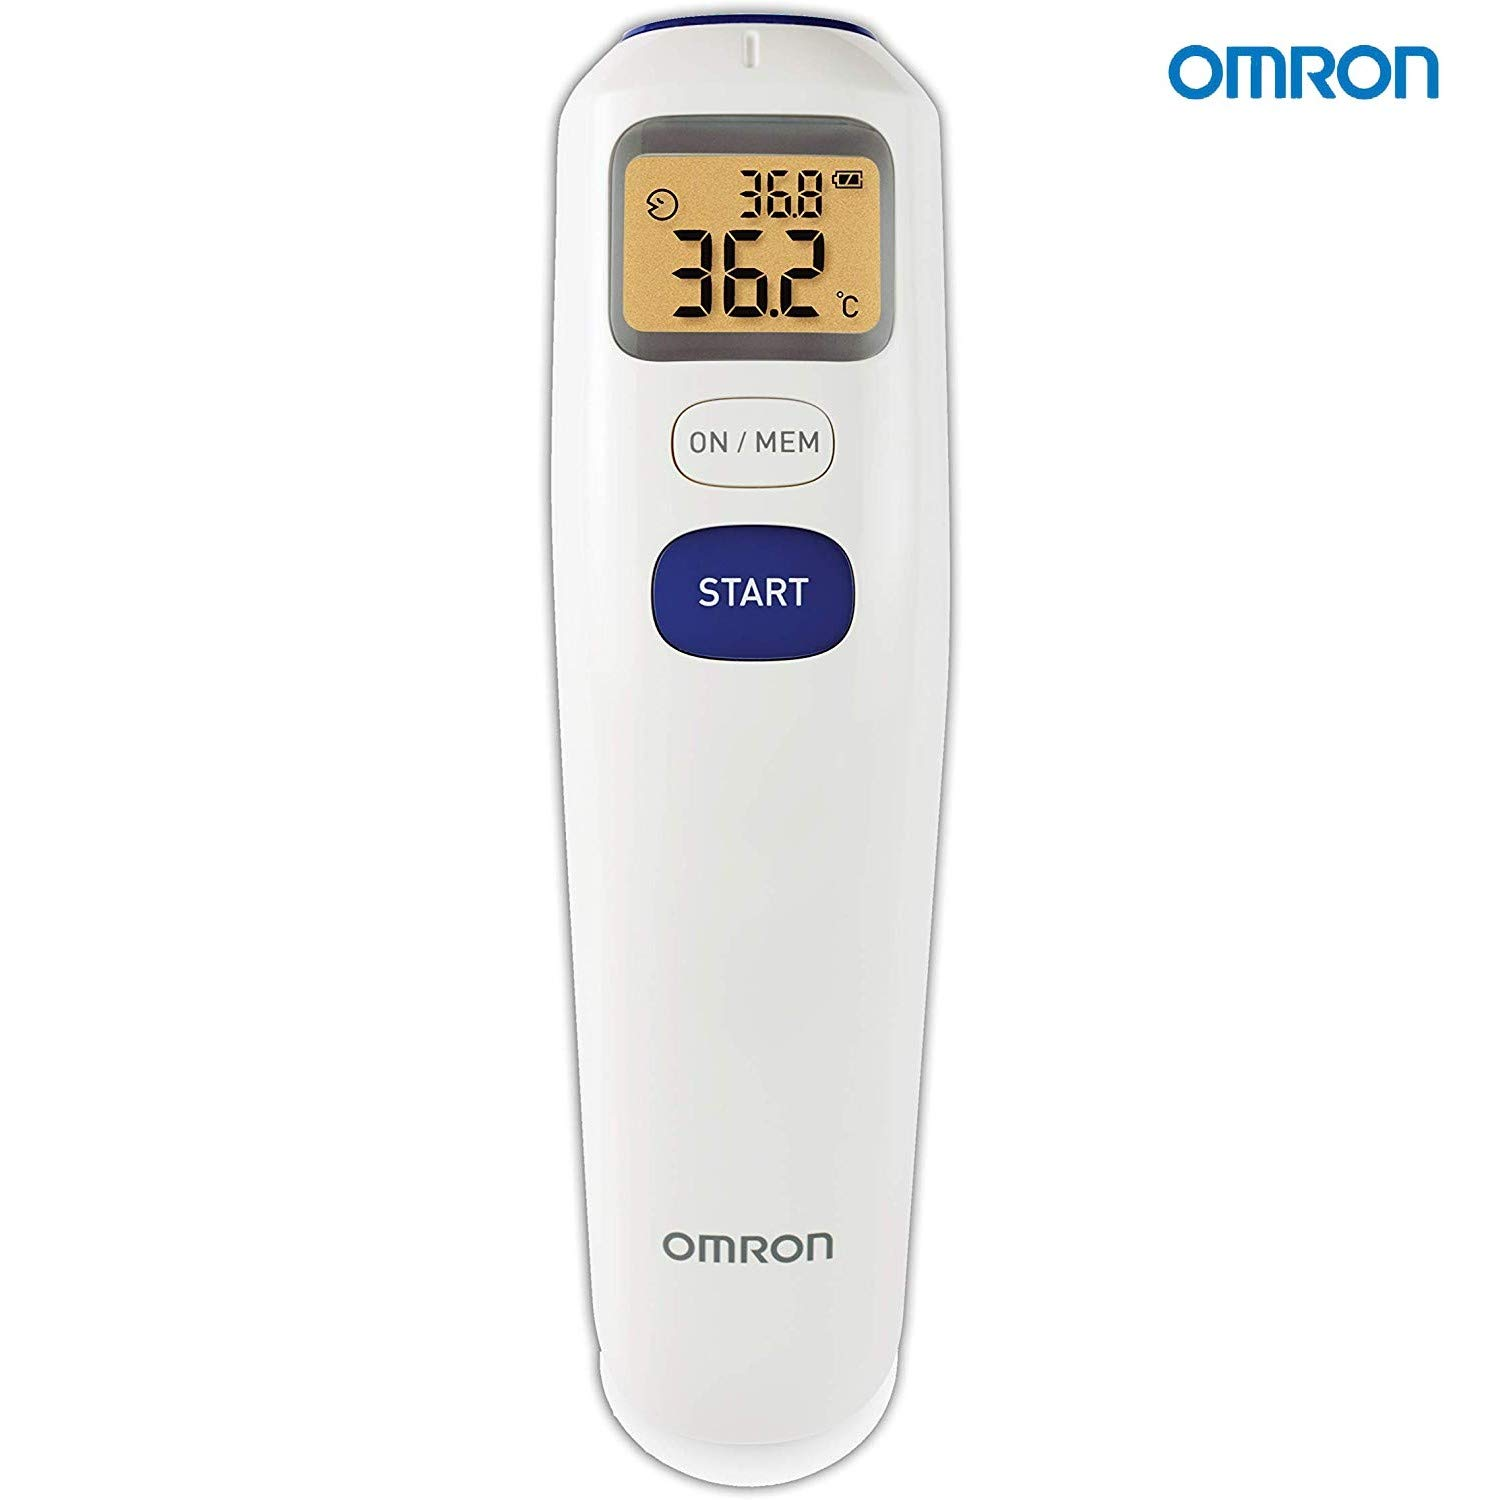 Omron MC 720 Non-Contact Digital Infrared Forehead Thermometer